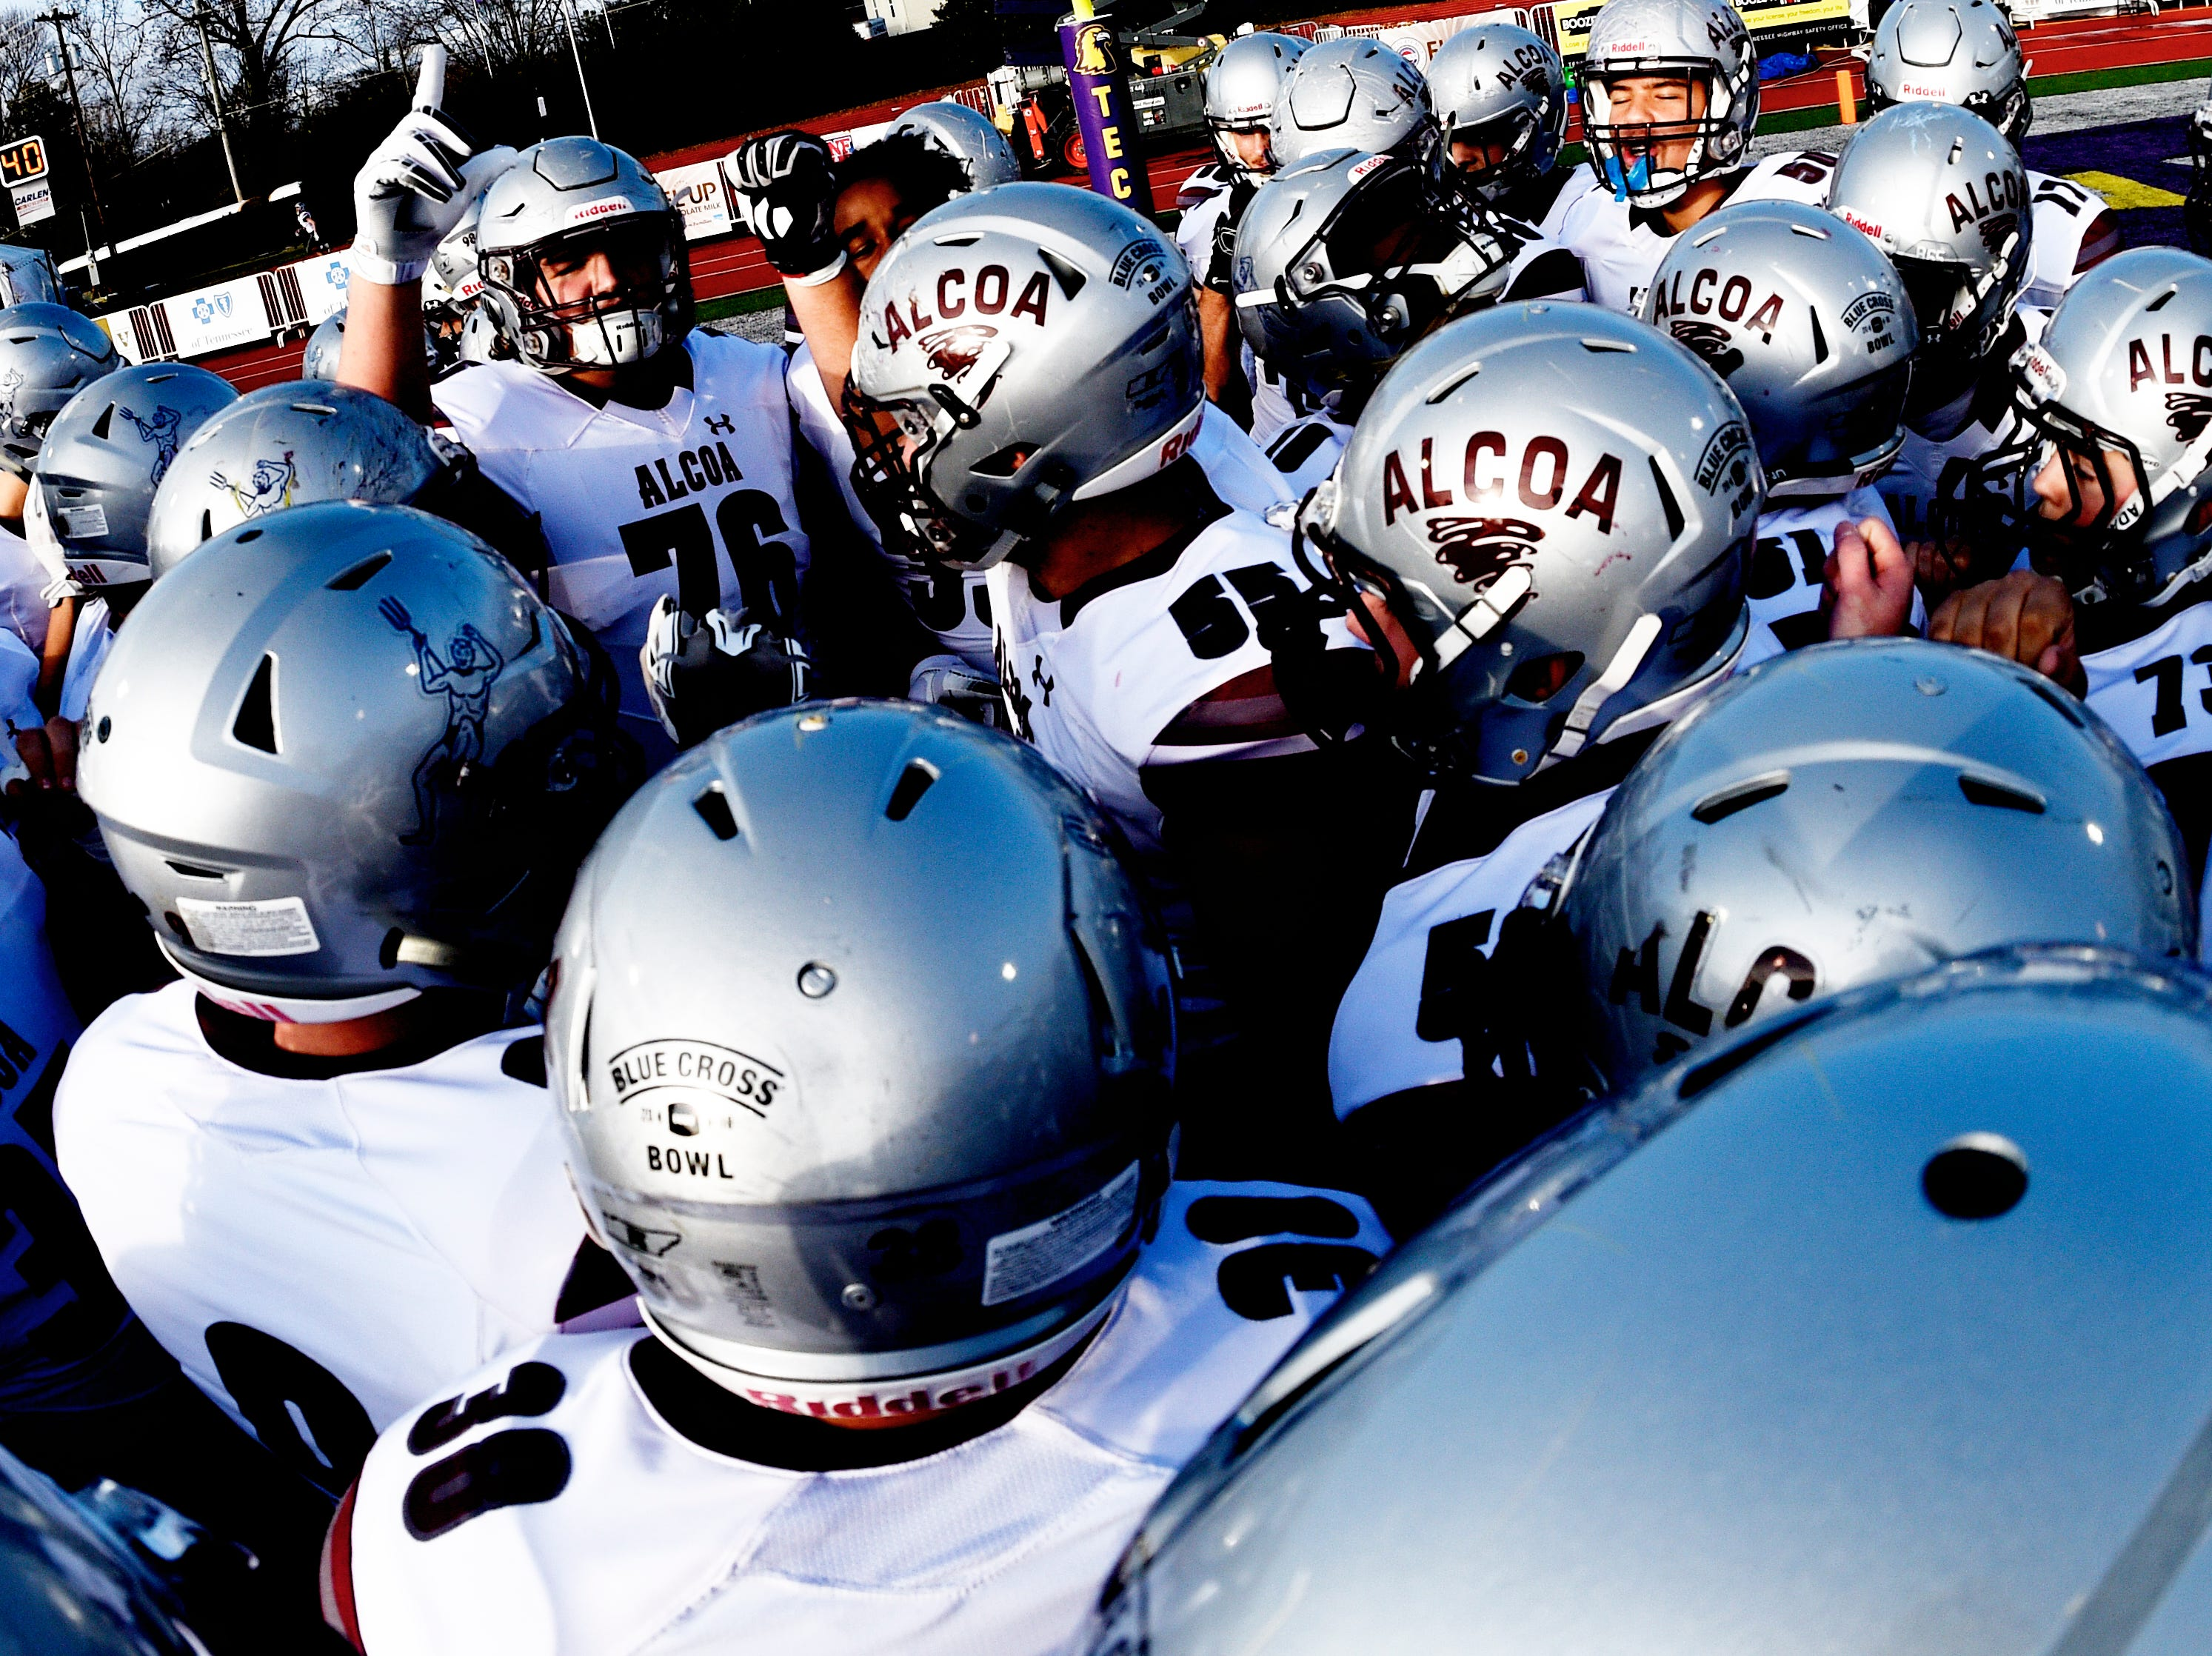 Alcoa huddles during a game between Alcoa and Covington at the TSSAA Blue Cross Bowl at Tennessee Tech's Tucker Stadium in Cookeville, Tennessee on Saturday, December 1, 2018.